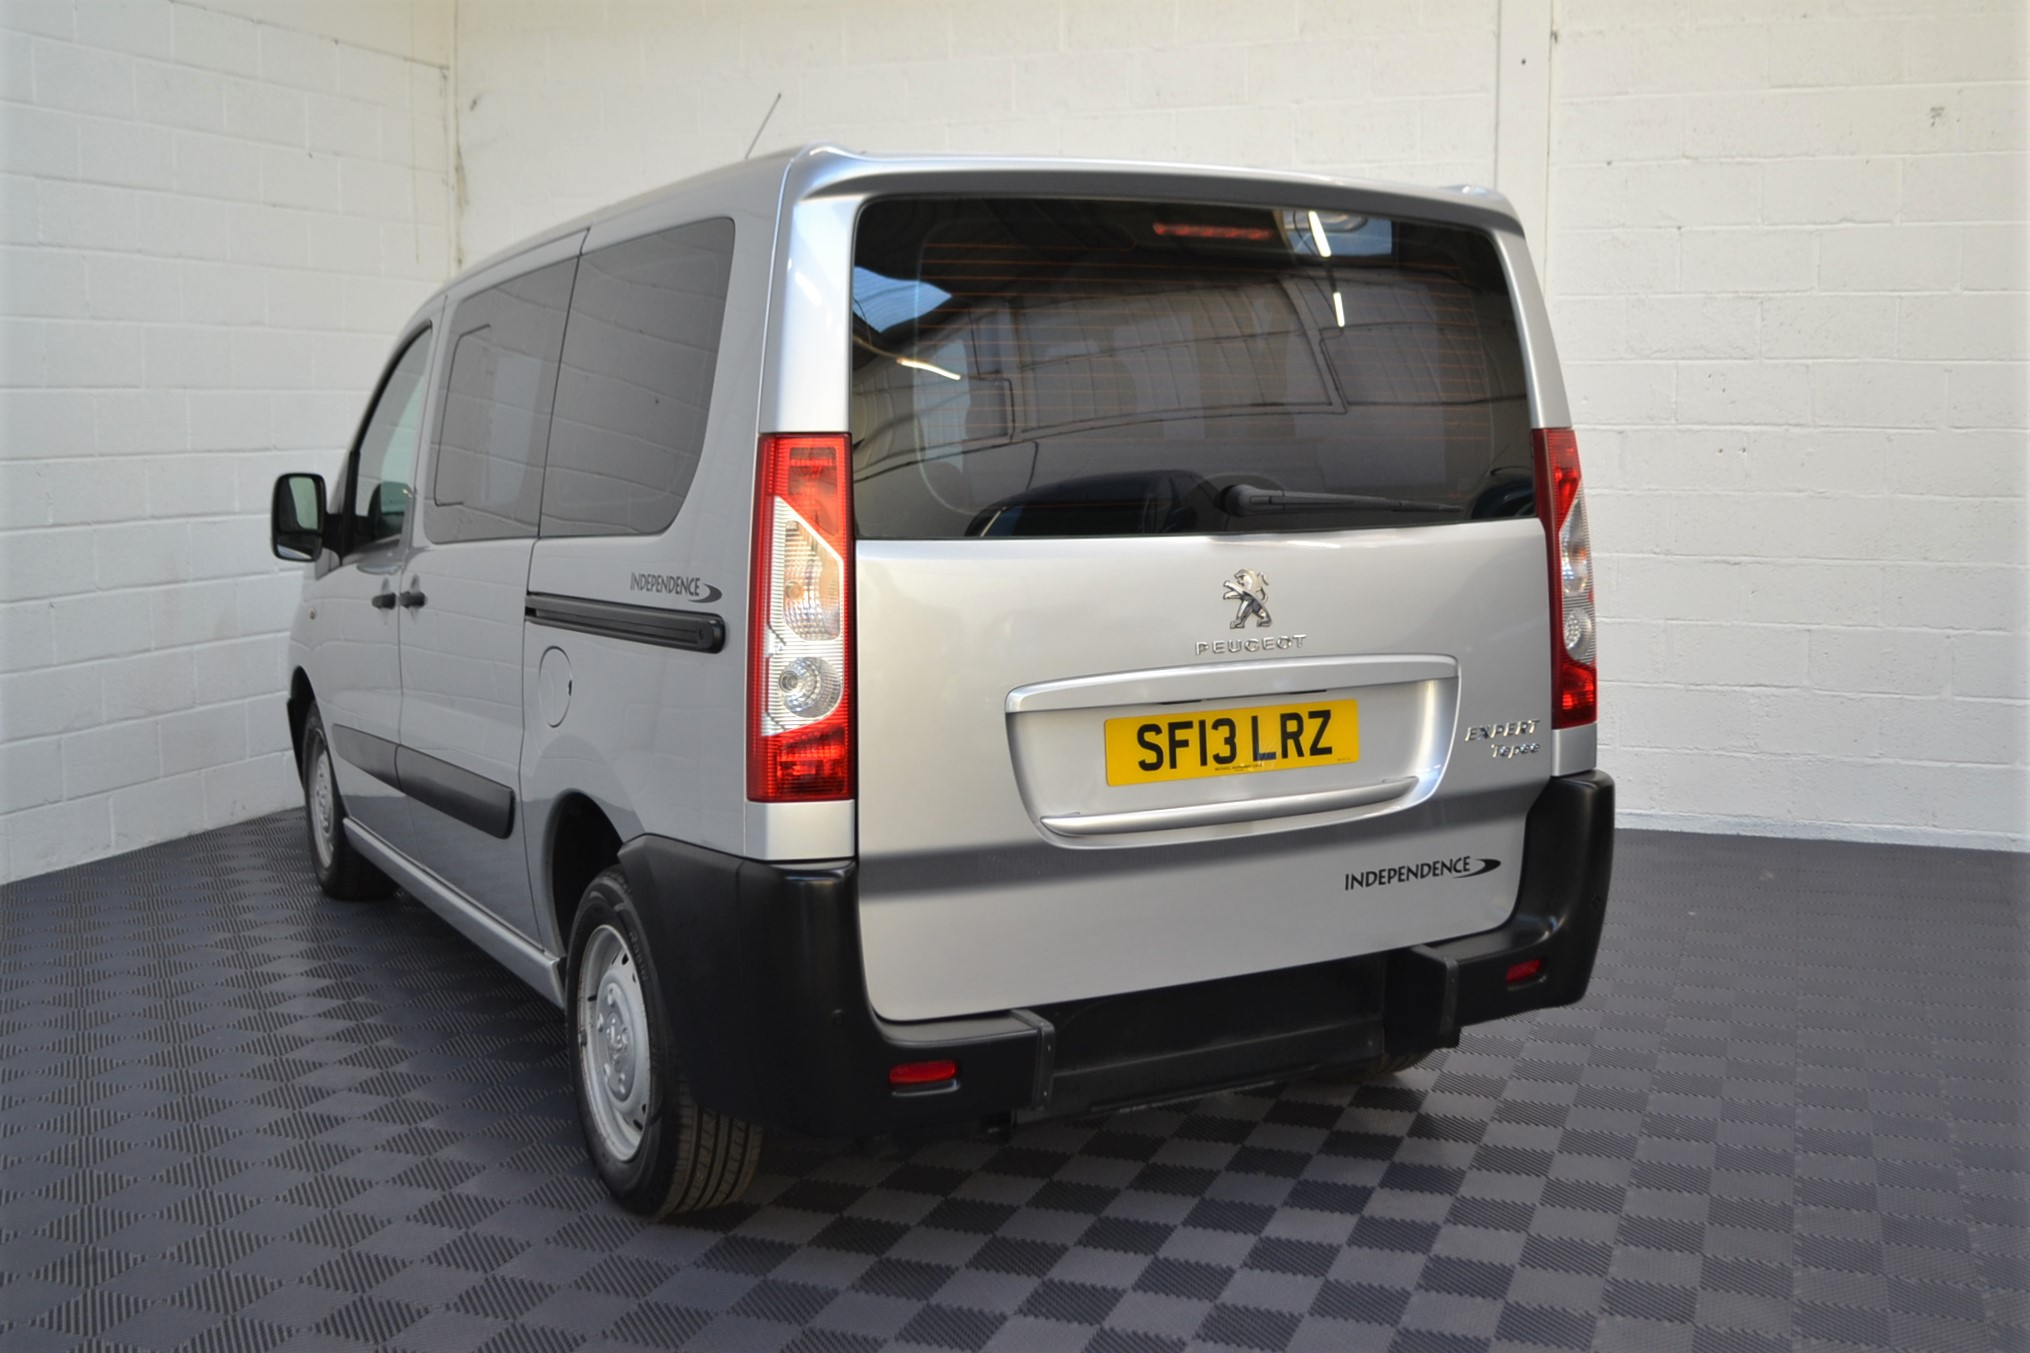 Disabled Cars For Sale Bristol Wheelchair Accessible Vehicles Used For Sale Somerset Devon Dorset Bath Peugeot Expert SF13 LRZ 5